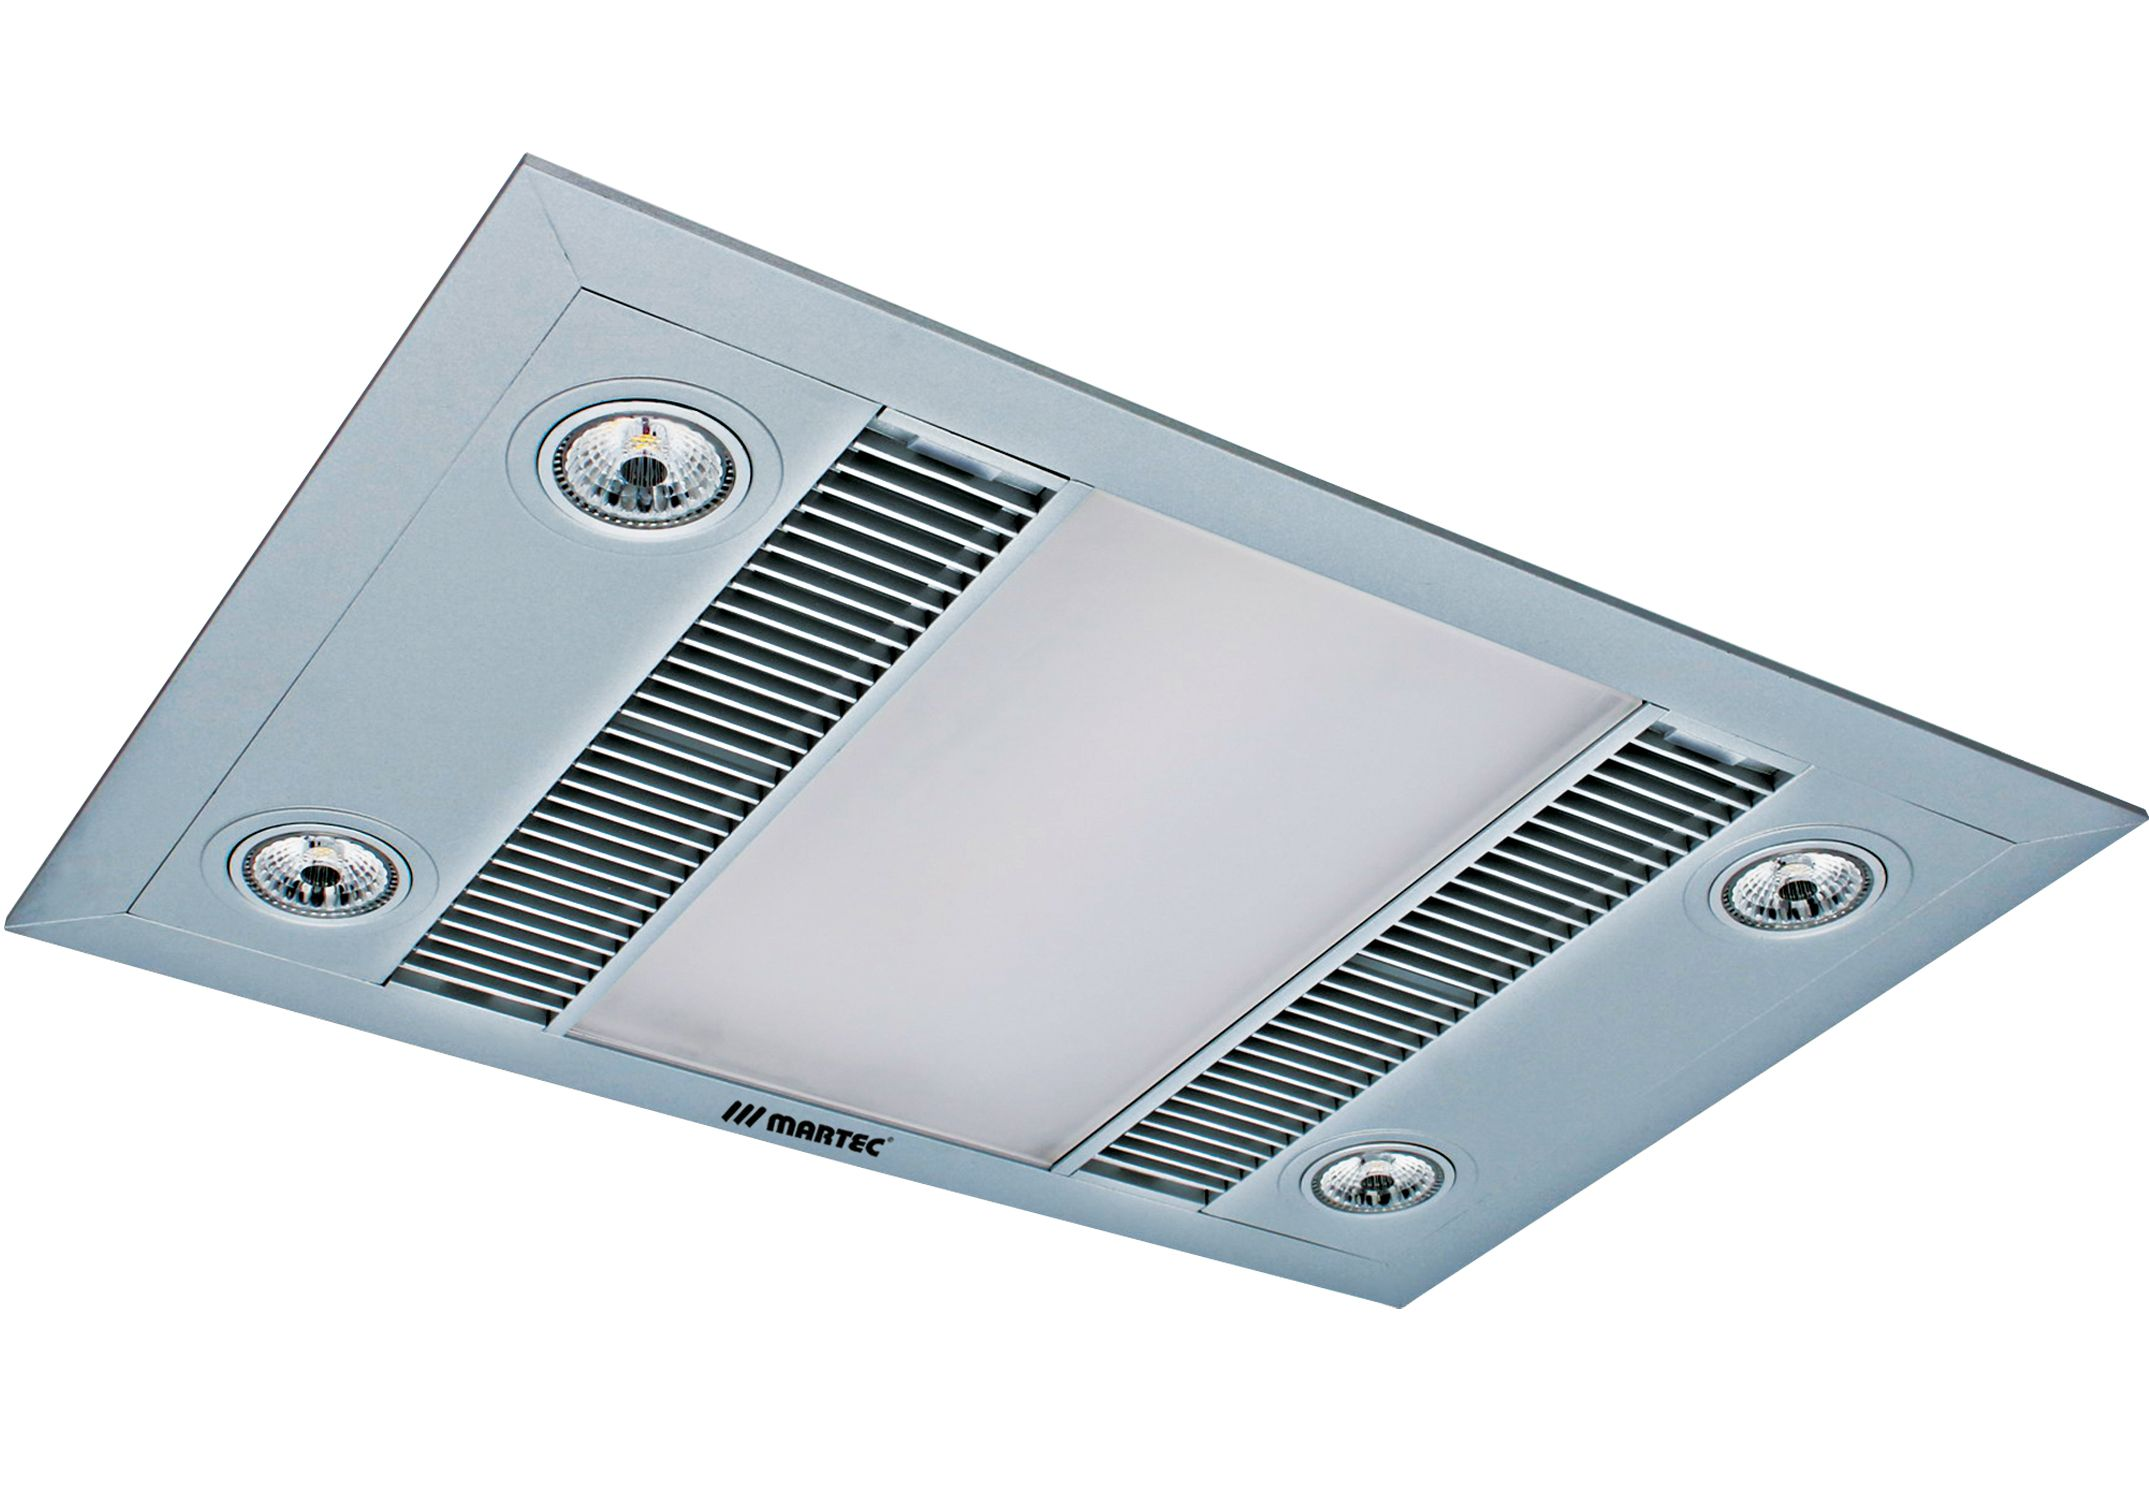 Bathroom Exhaust Fan Heat Recovery Ventilator Installation Q&A about  installing an HRV over a bathroom shower